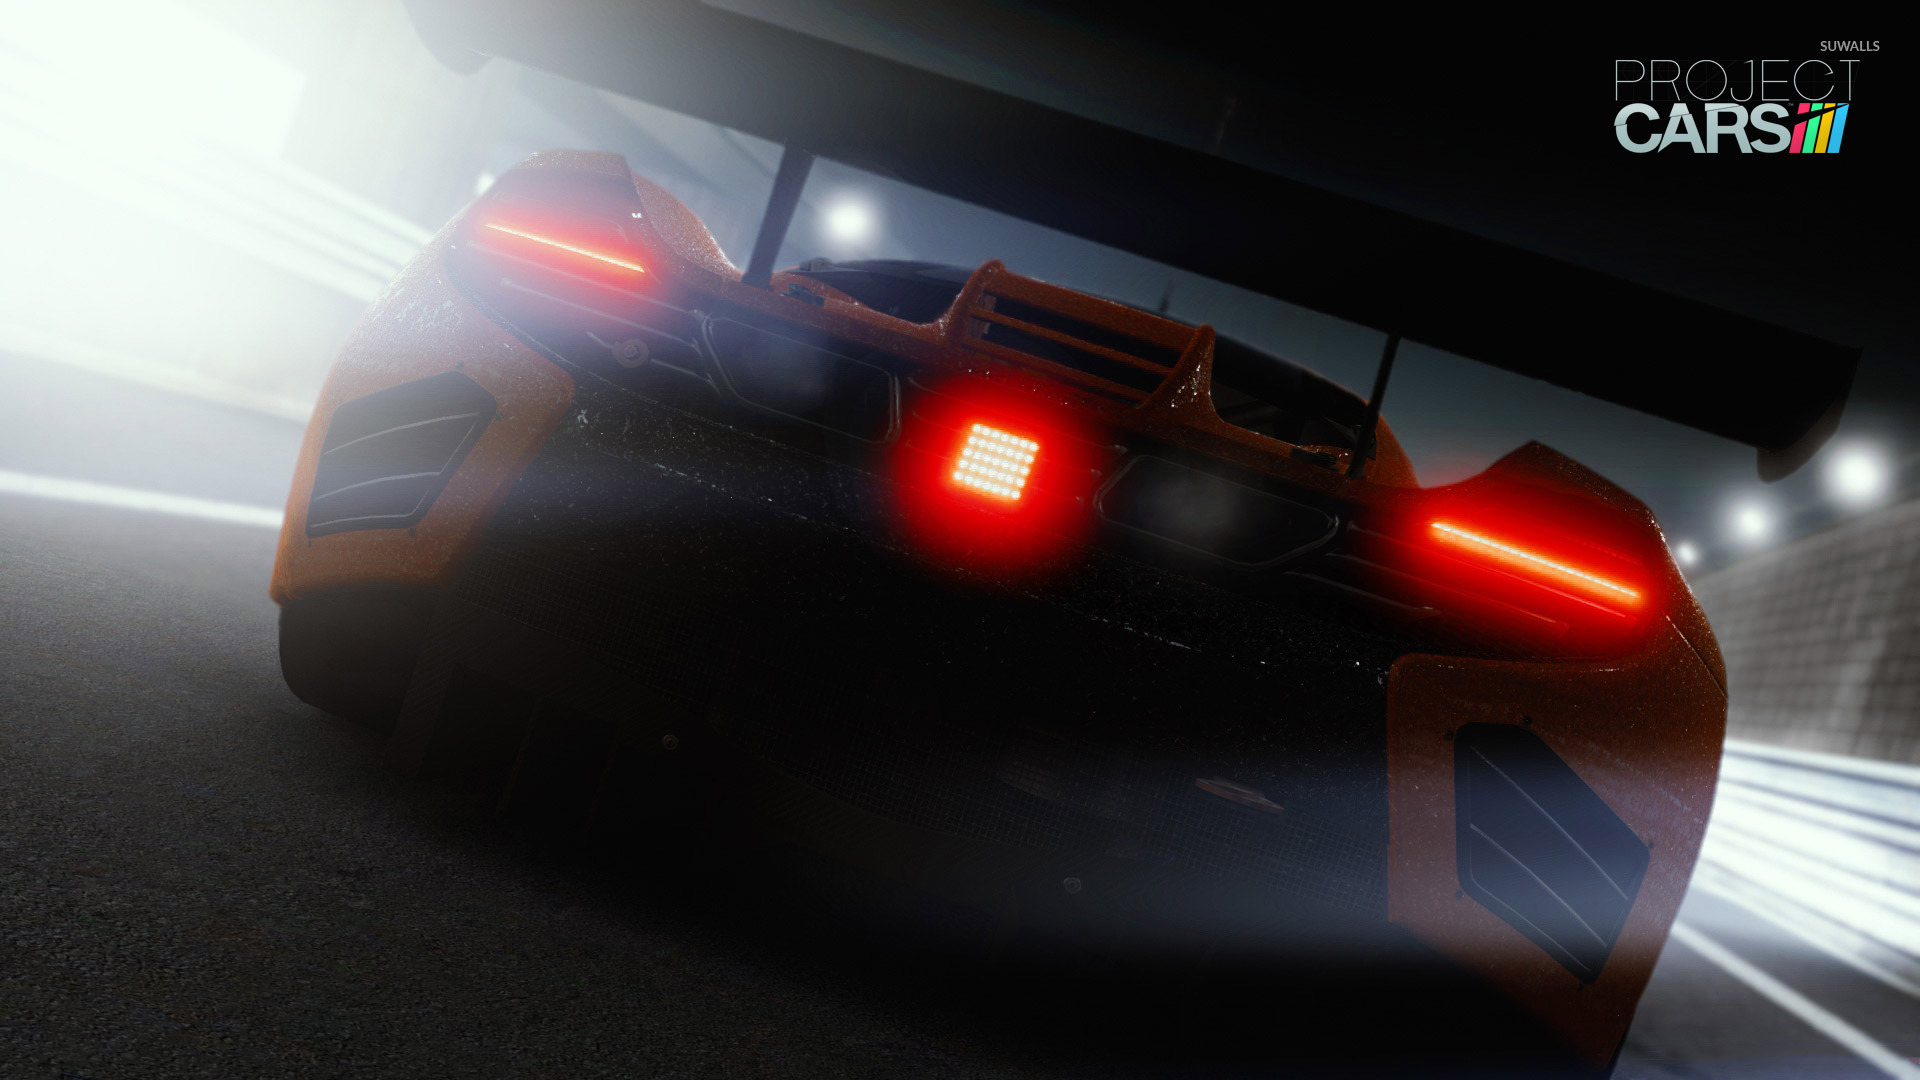 Project Cars 9 Wallpaper Game Wallpapers 43668